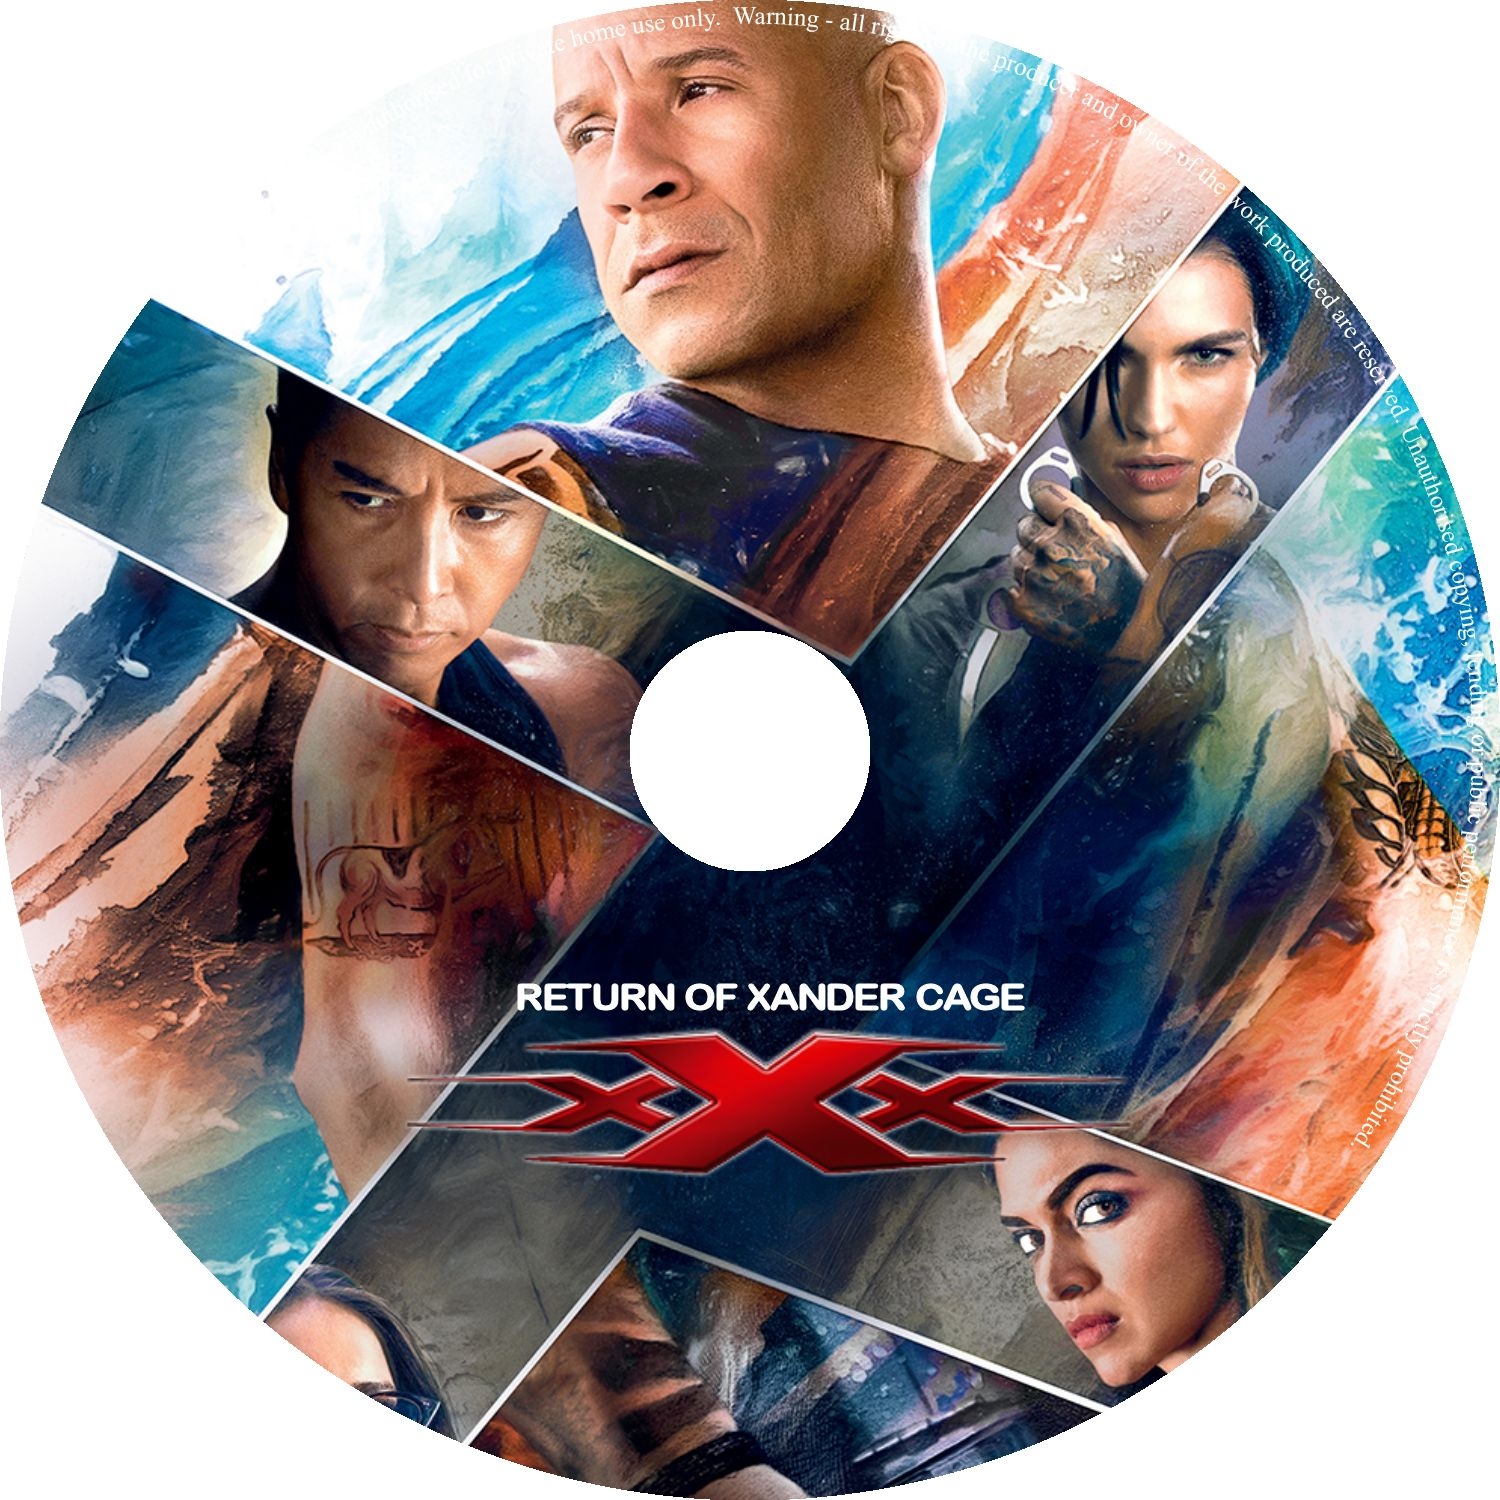 Xxx Return Of Xander Cage 2017 R0 Custom Cover Label Dvd Covers And Labels